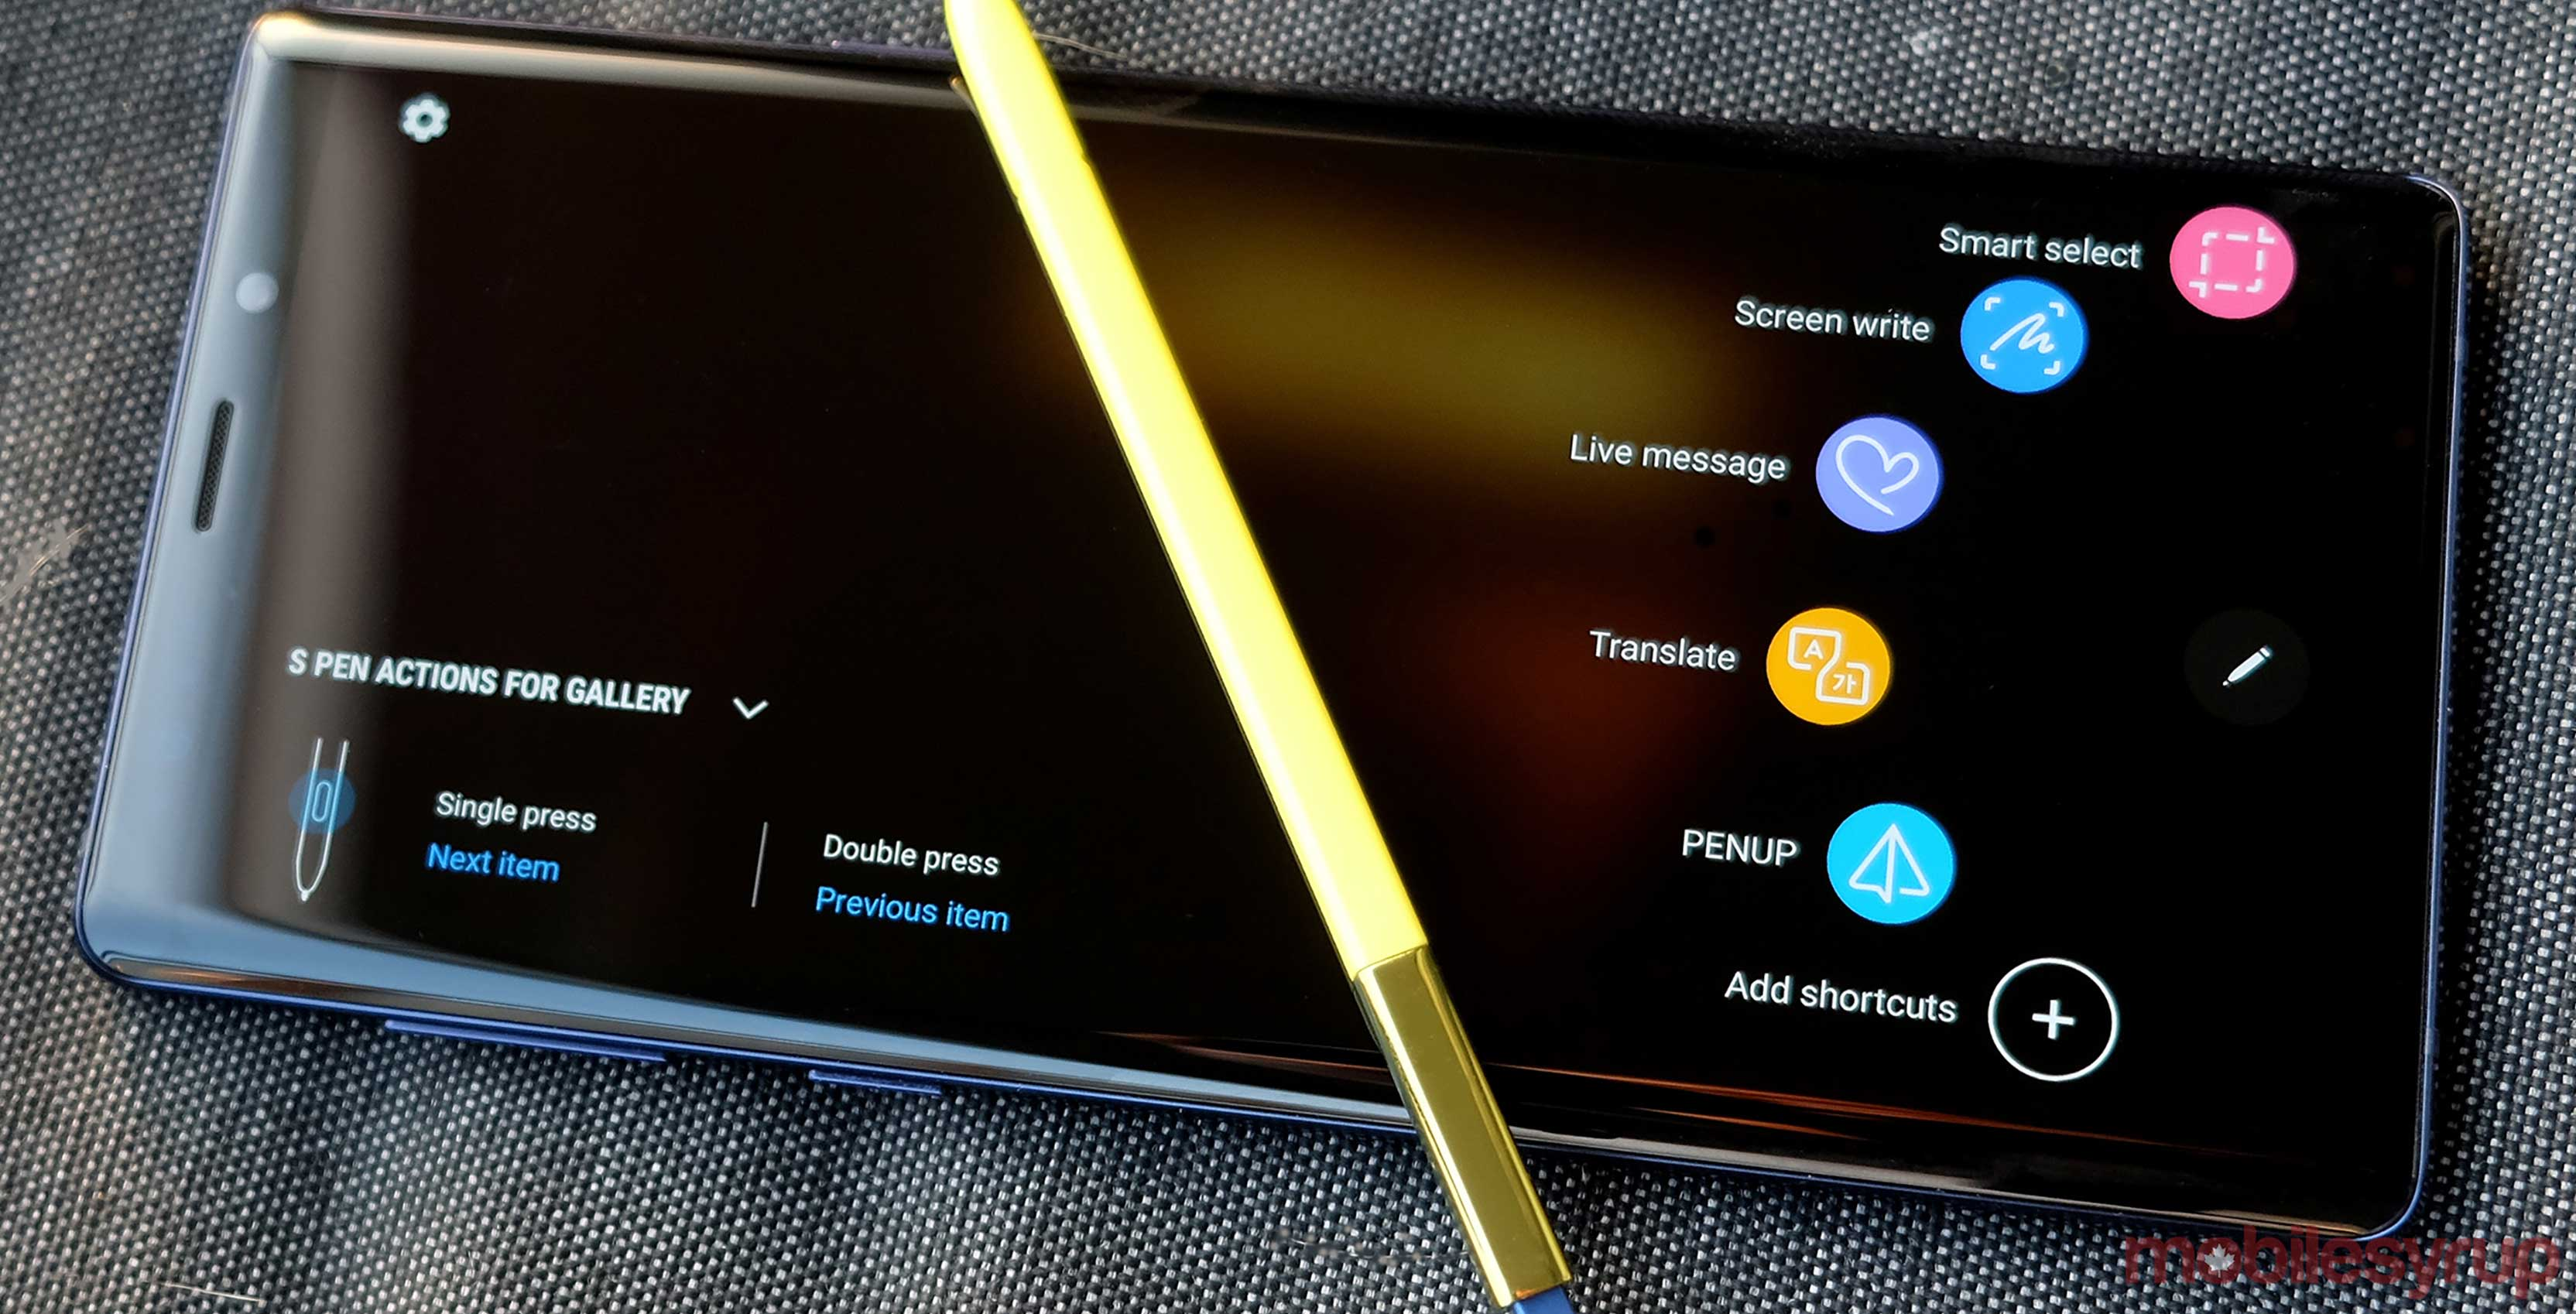 Samsung Galaxy Note 9 Camera Review The Pen Sticks Out